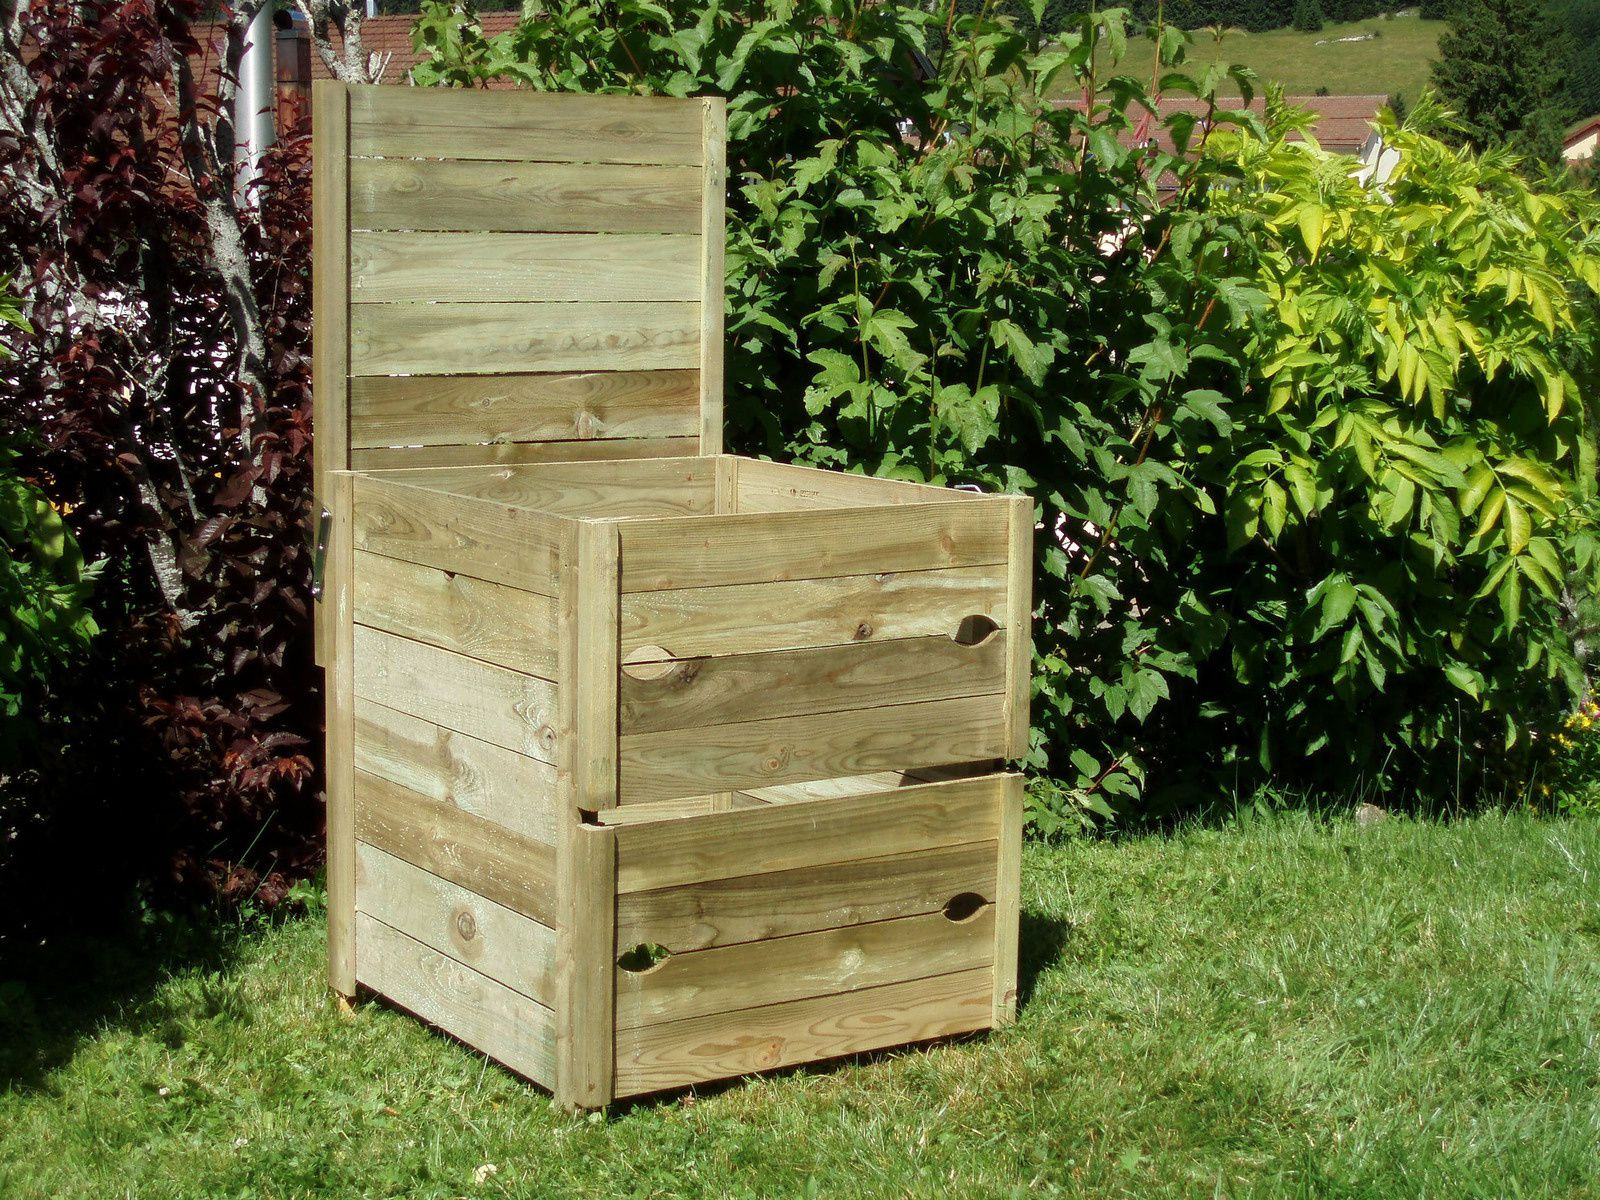 sud messin composter pour r duire ses d chets info. Black Bedroom Furniture Sets. Home Design Ideas